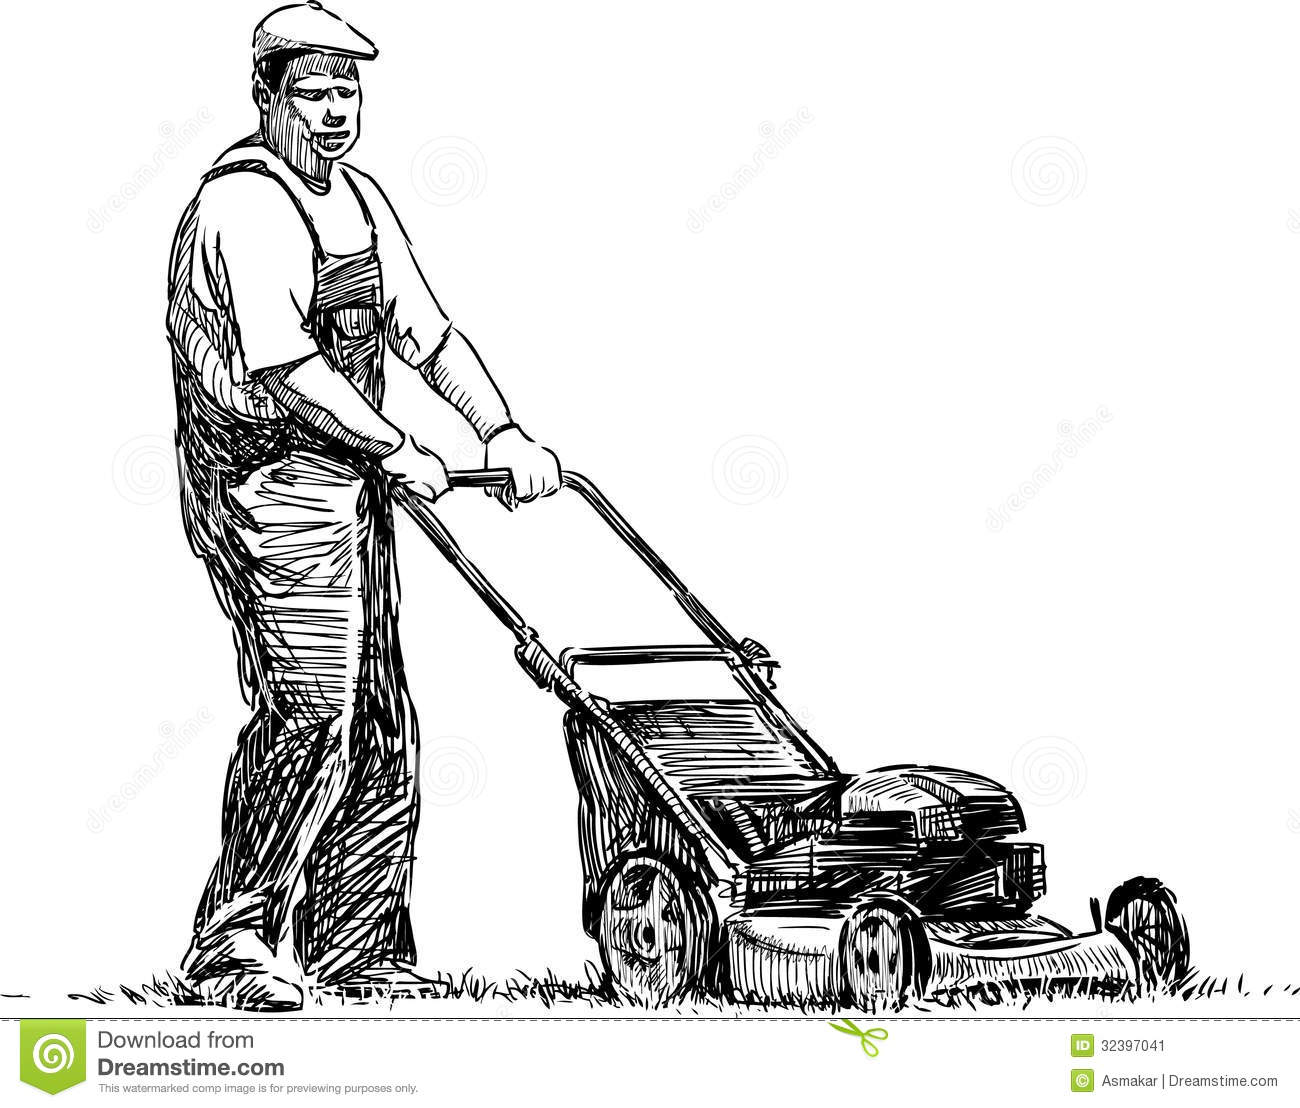 lawnmower drawing. royalty-free stock photo lawnmower drawing